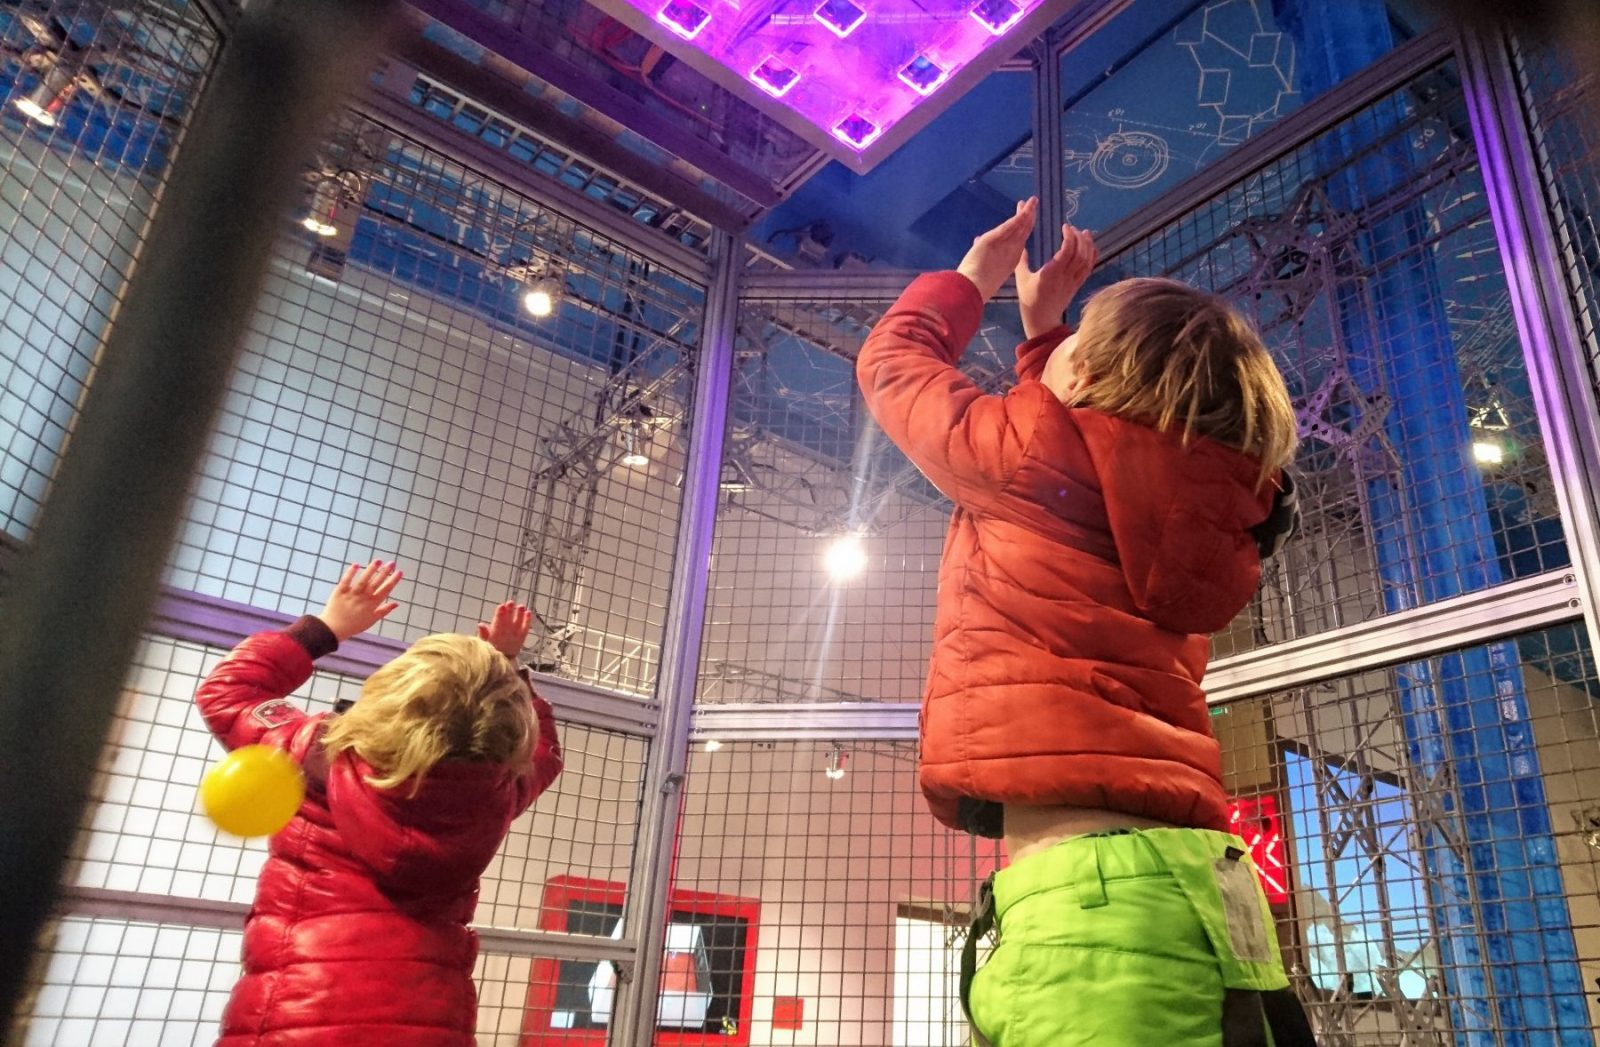 Science Center Delft - ballen vangen